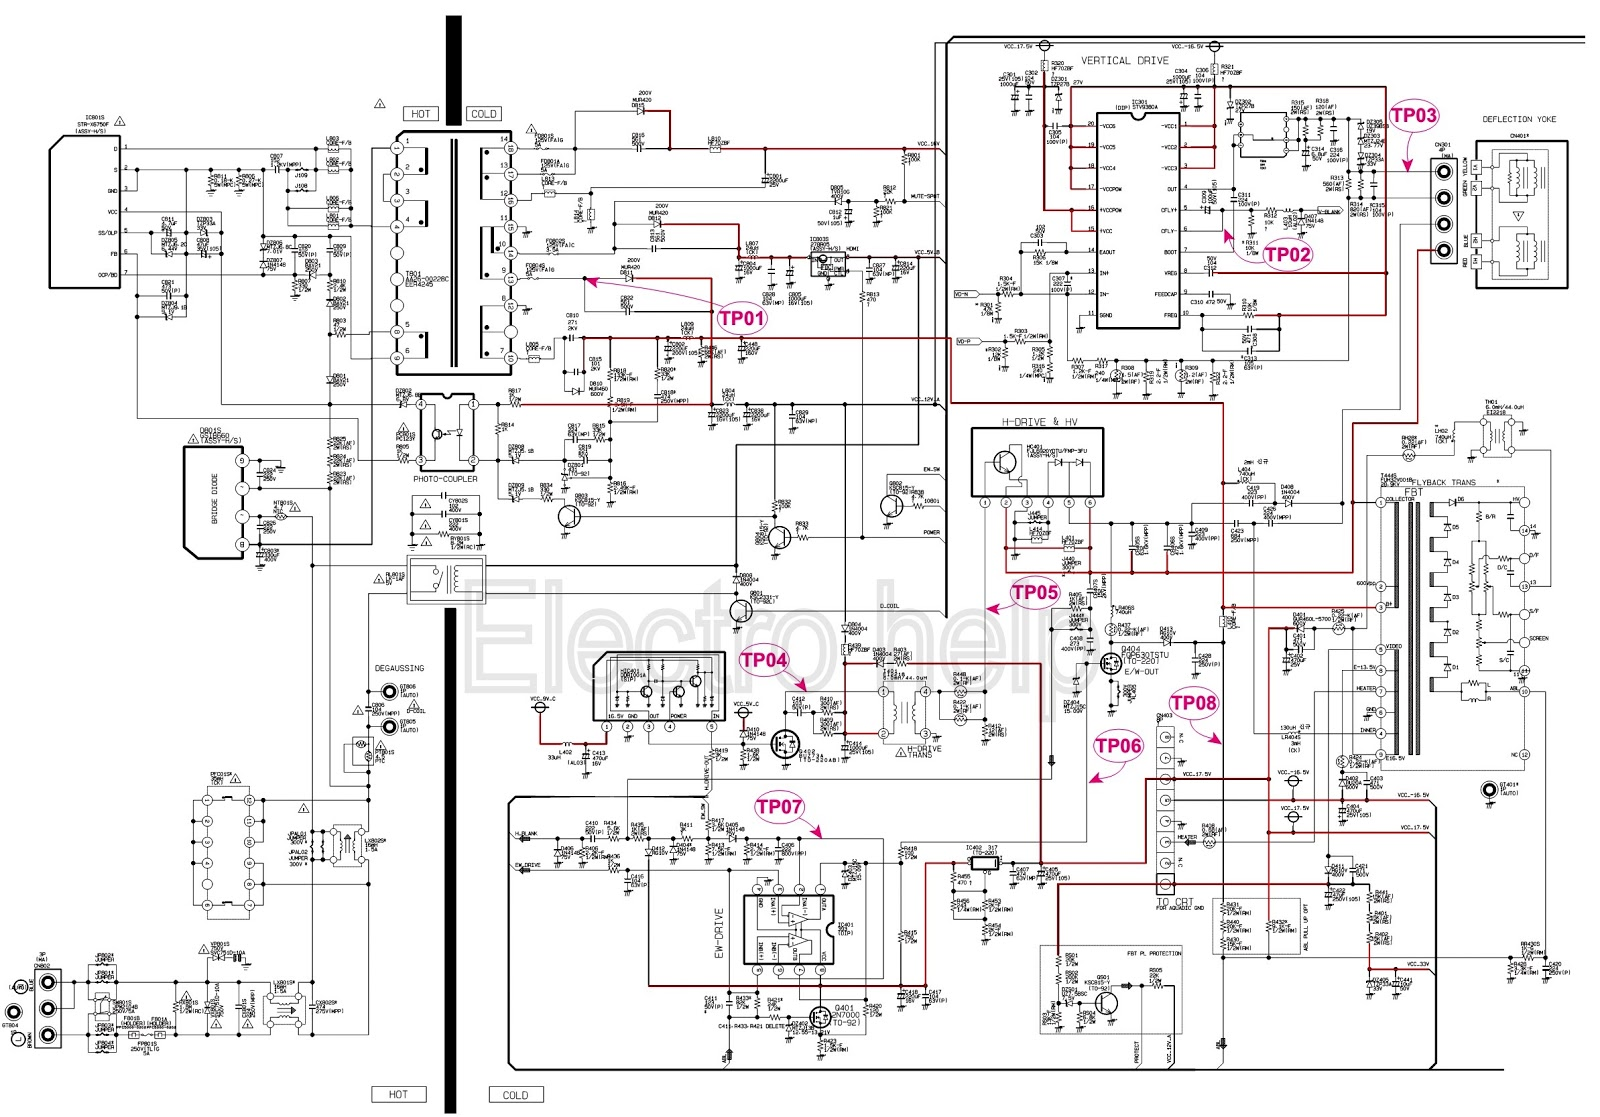 ctv smps circuit diagram str x6750f as power switching [ 1600 x 1117 Pixel ]